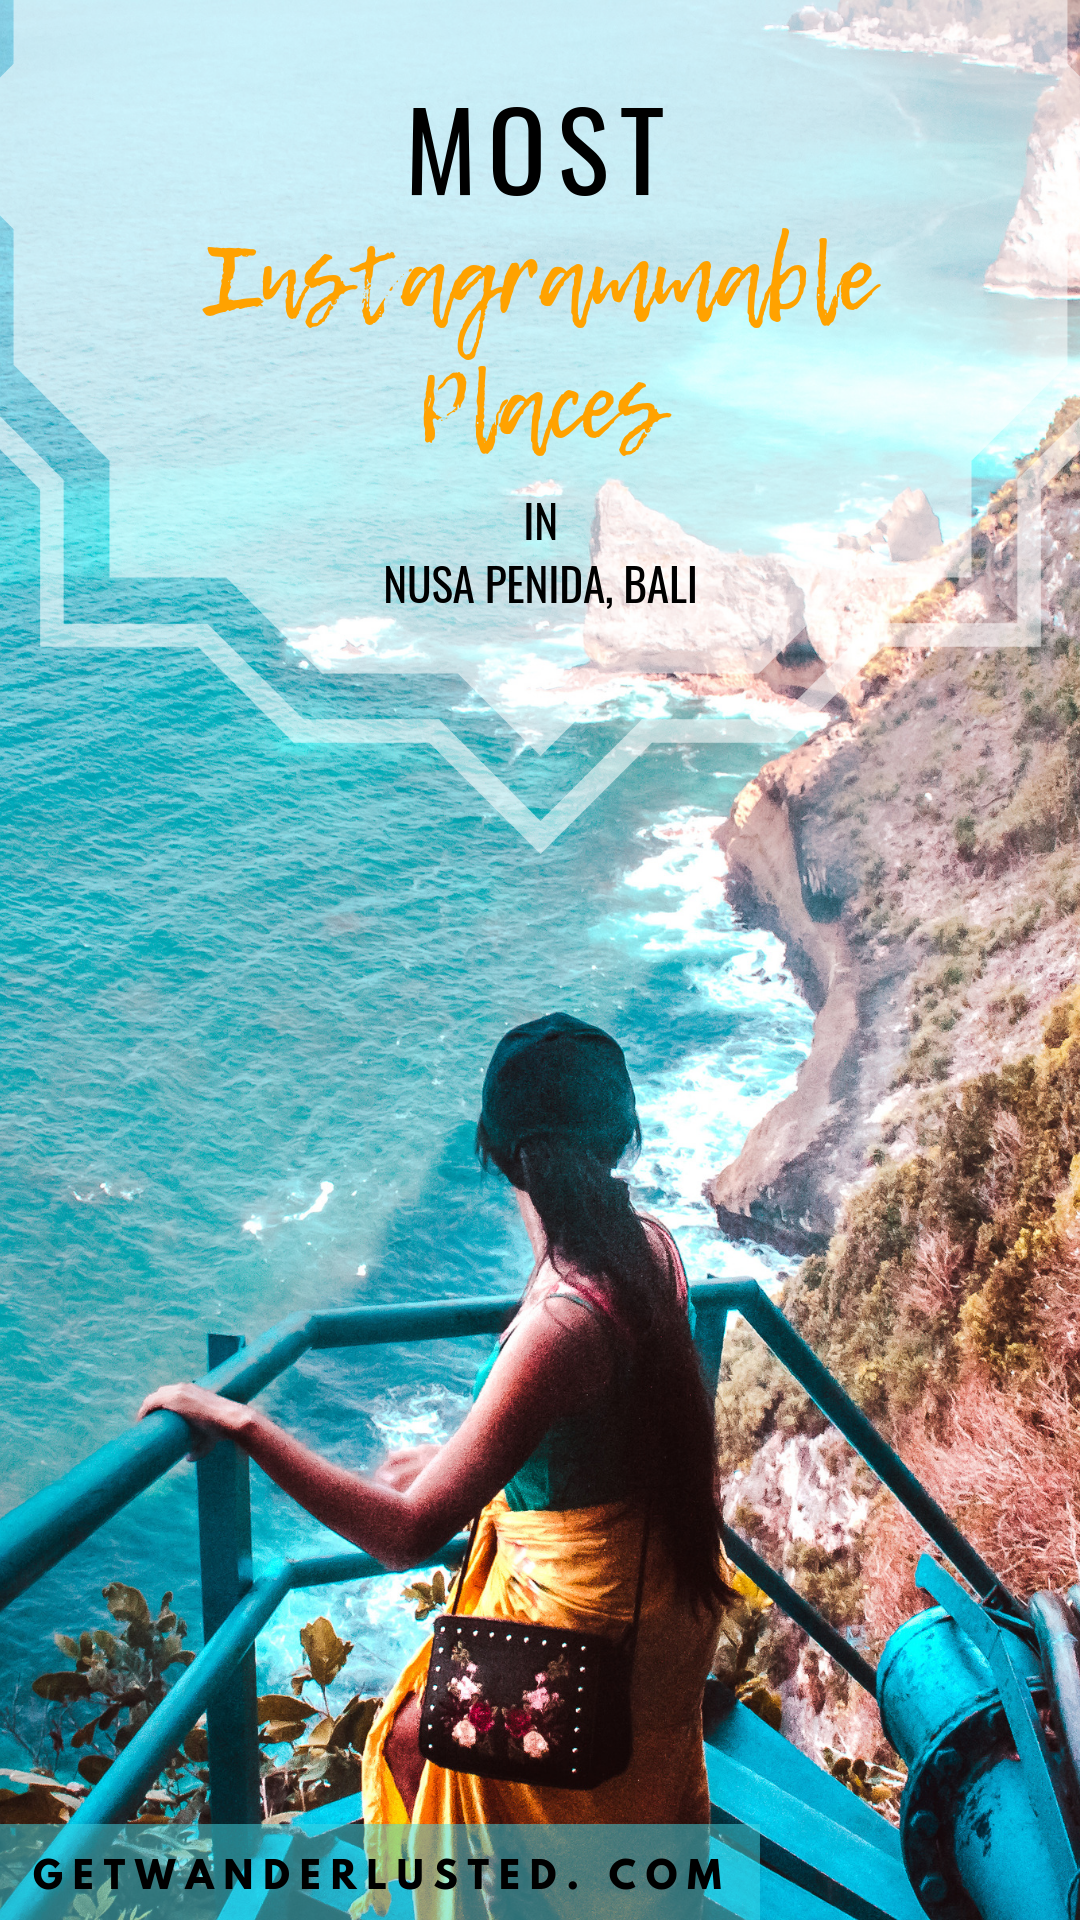 Most Instagrammable Places in Nusa Penida, Bali